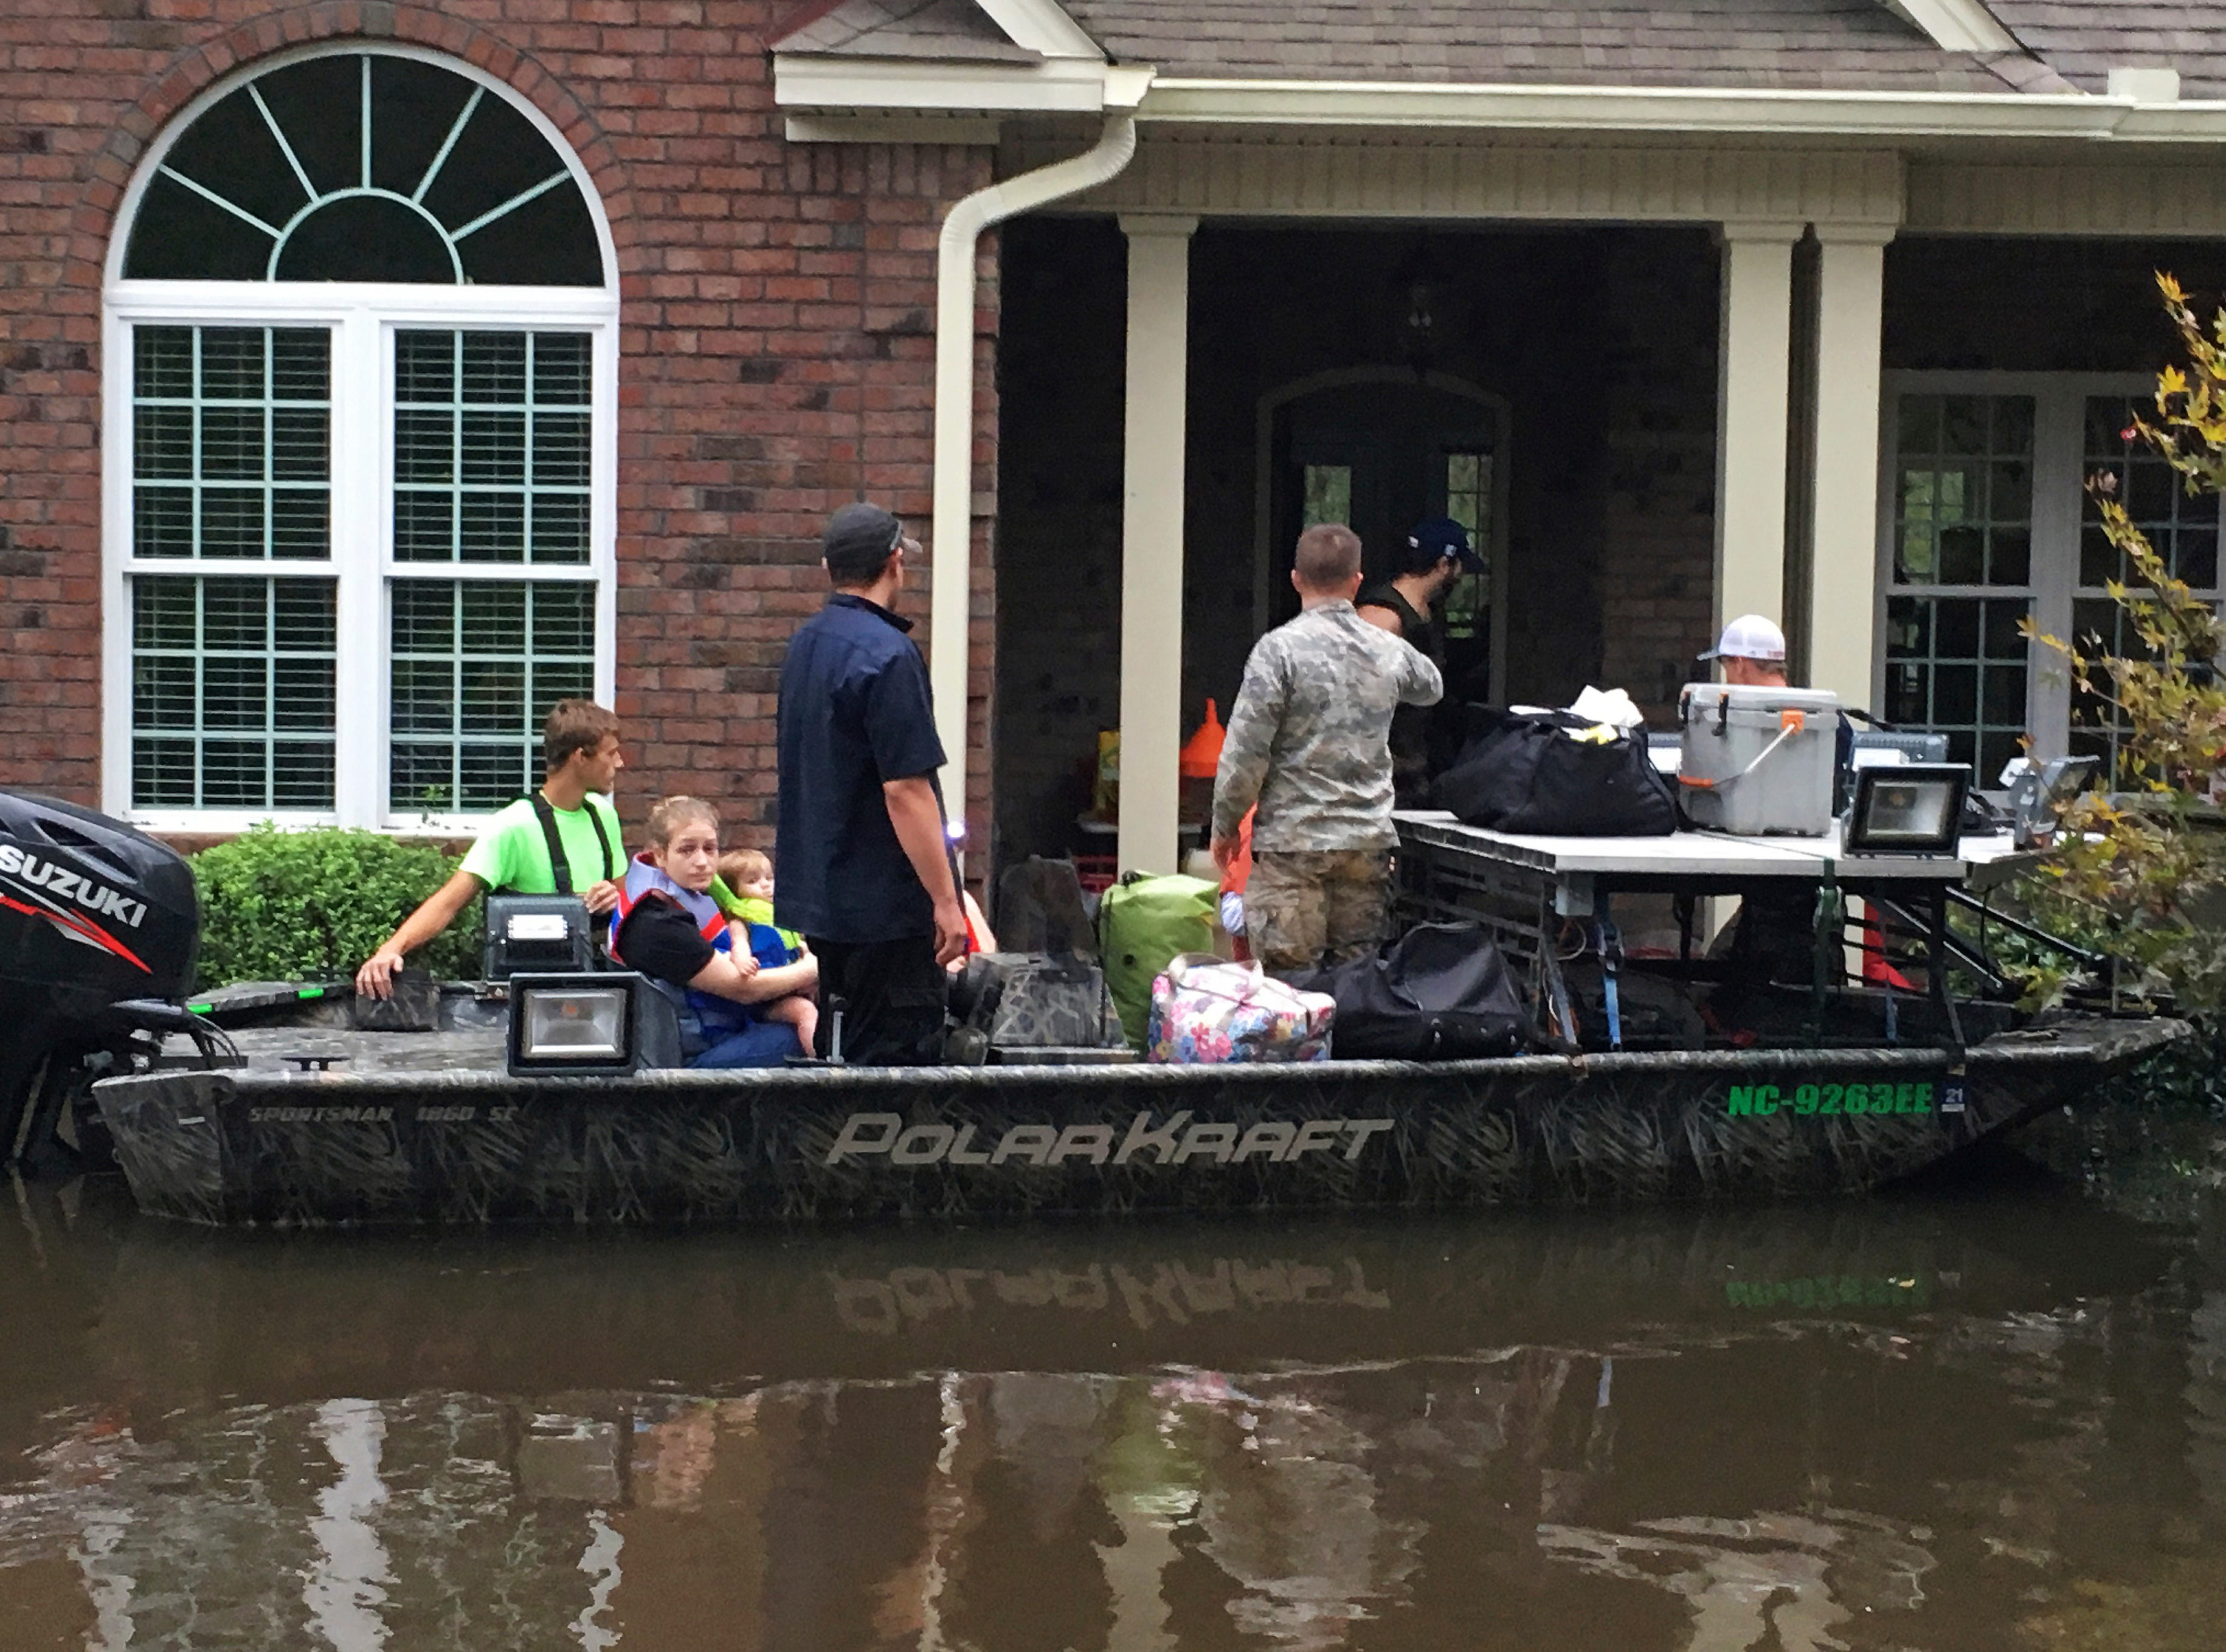 Authorities evacuate a family from rising waters caused by Florence, now a tropical storm, on Saturday, Sept. 15, 2018 in New Bern, N.C.